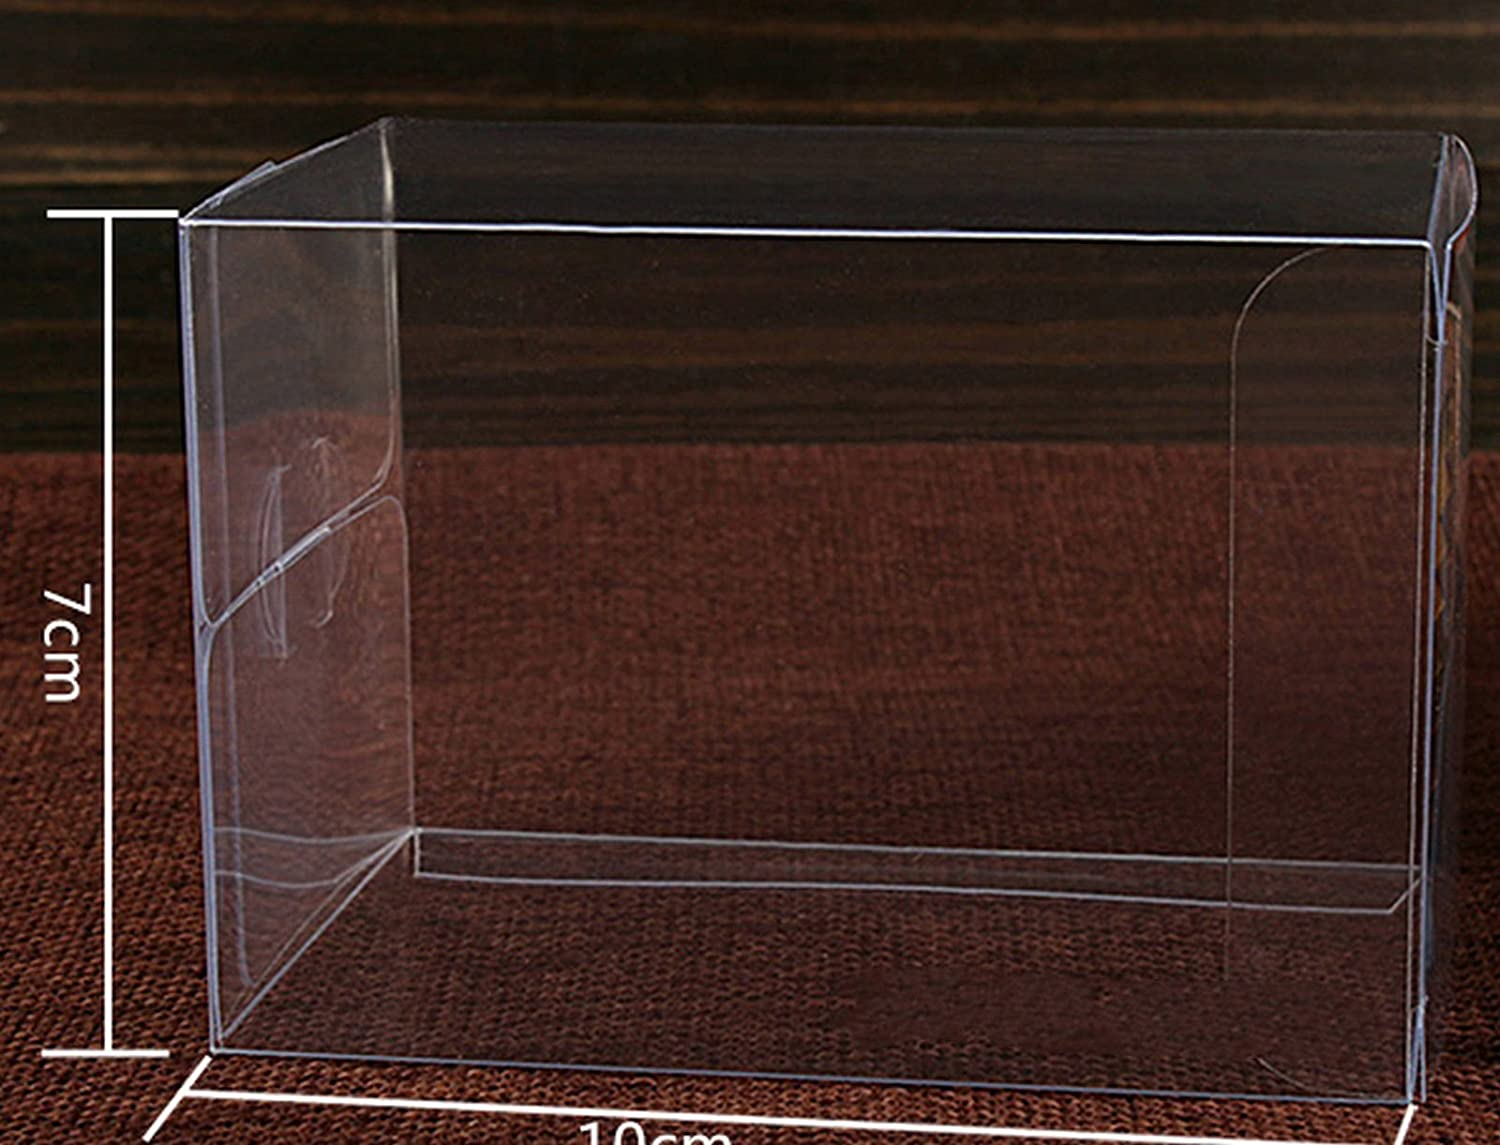 3 x 3 x 3 cm 20pcs x Clear Plastic PVC Weddings Party Favours Gift Packaging Boxes Size Choice